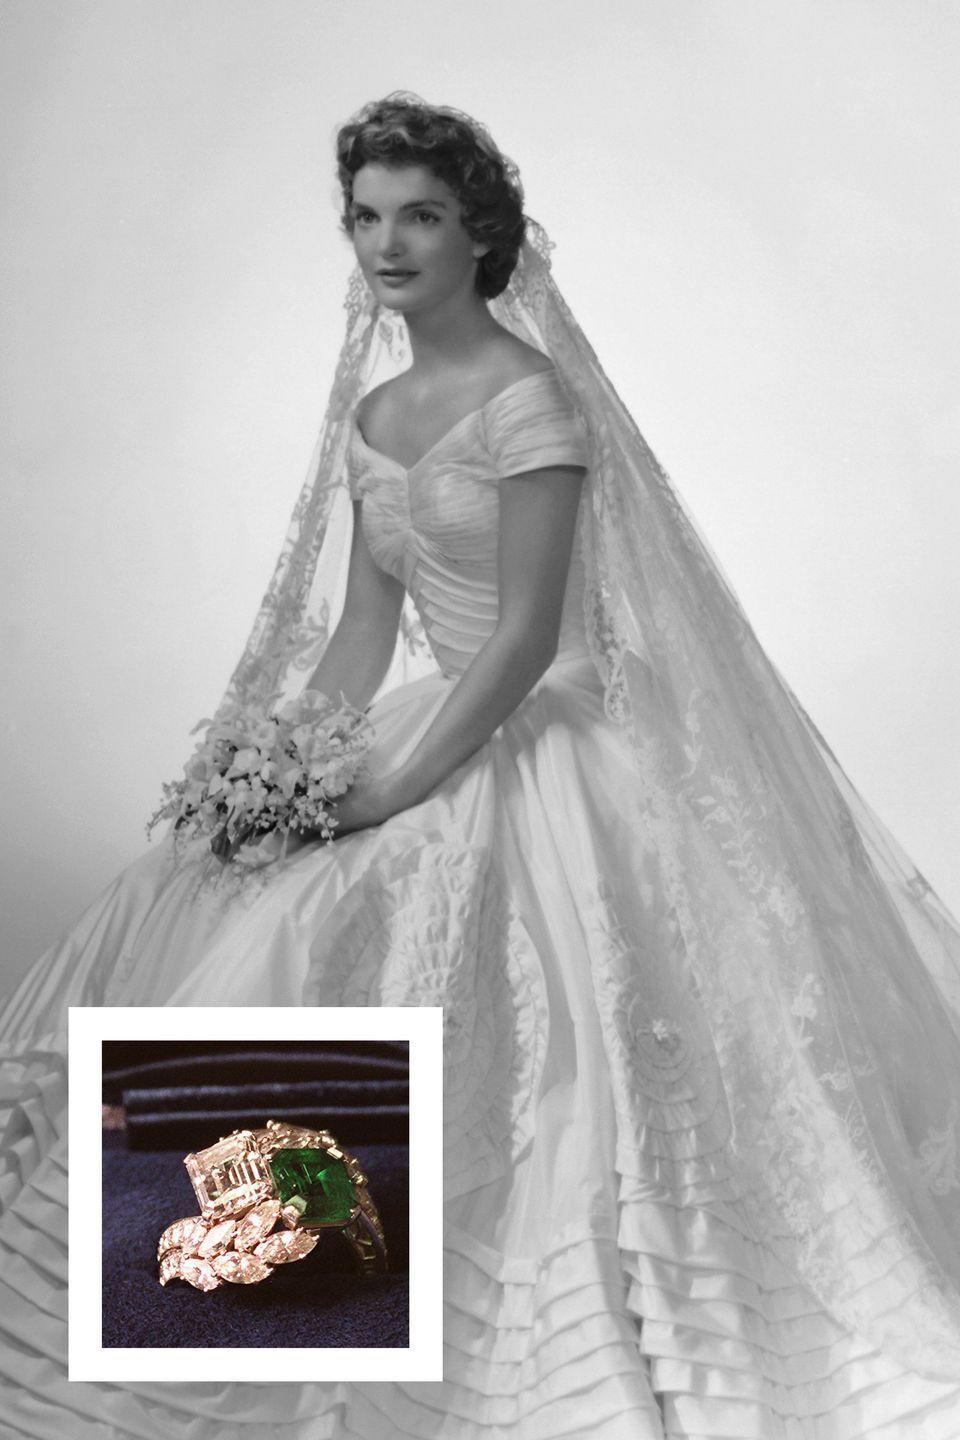 """<p>Then-Congressman <a href=""""https://www.townandcountrymag.com/society/tradition/g3320/jfk-jackie-kennedy-marriage-photos/"""" rel=""""nofollow noopener"""" target=""""_blank"""" data-ylk=""""slk:John F. Kennedy proposed to Jacqueline Bouvier"""" class=""""link rapid-noclick-resp"""">John F. Kennedy proposed to Jacqueline Bouvier</a> in 1953 with a uniquely gorgeous ring by Van Cleef & Arpels. The ring was set with a 2.88-carat diamond <a href=""""https://www.townandcountrymag.com/the-scene/weddings/news/g1616/emerald-engagement-rings/"""" rel=""""nofollow noopener"""" target=""""_blank"""" data-ylk=""""slk:and a 2.84-carat emerald"""" class=""""link rapid-noclick-resp"""">and a 2.84-carat emerald</a> with diamond accents surrounding the stones, <a href=""""https://www.vogue.com/article/jackie-kennedy-wedding-to-john-f-kennedy"""" rel=""""nofollow noopener"""" target=""""_blank"""" data-ylk=""""slk:according to Vogue."""" class=""""link rapid-noclick-resp"""">according to <em>Vogue.</em></a></p>"""